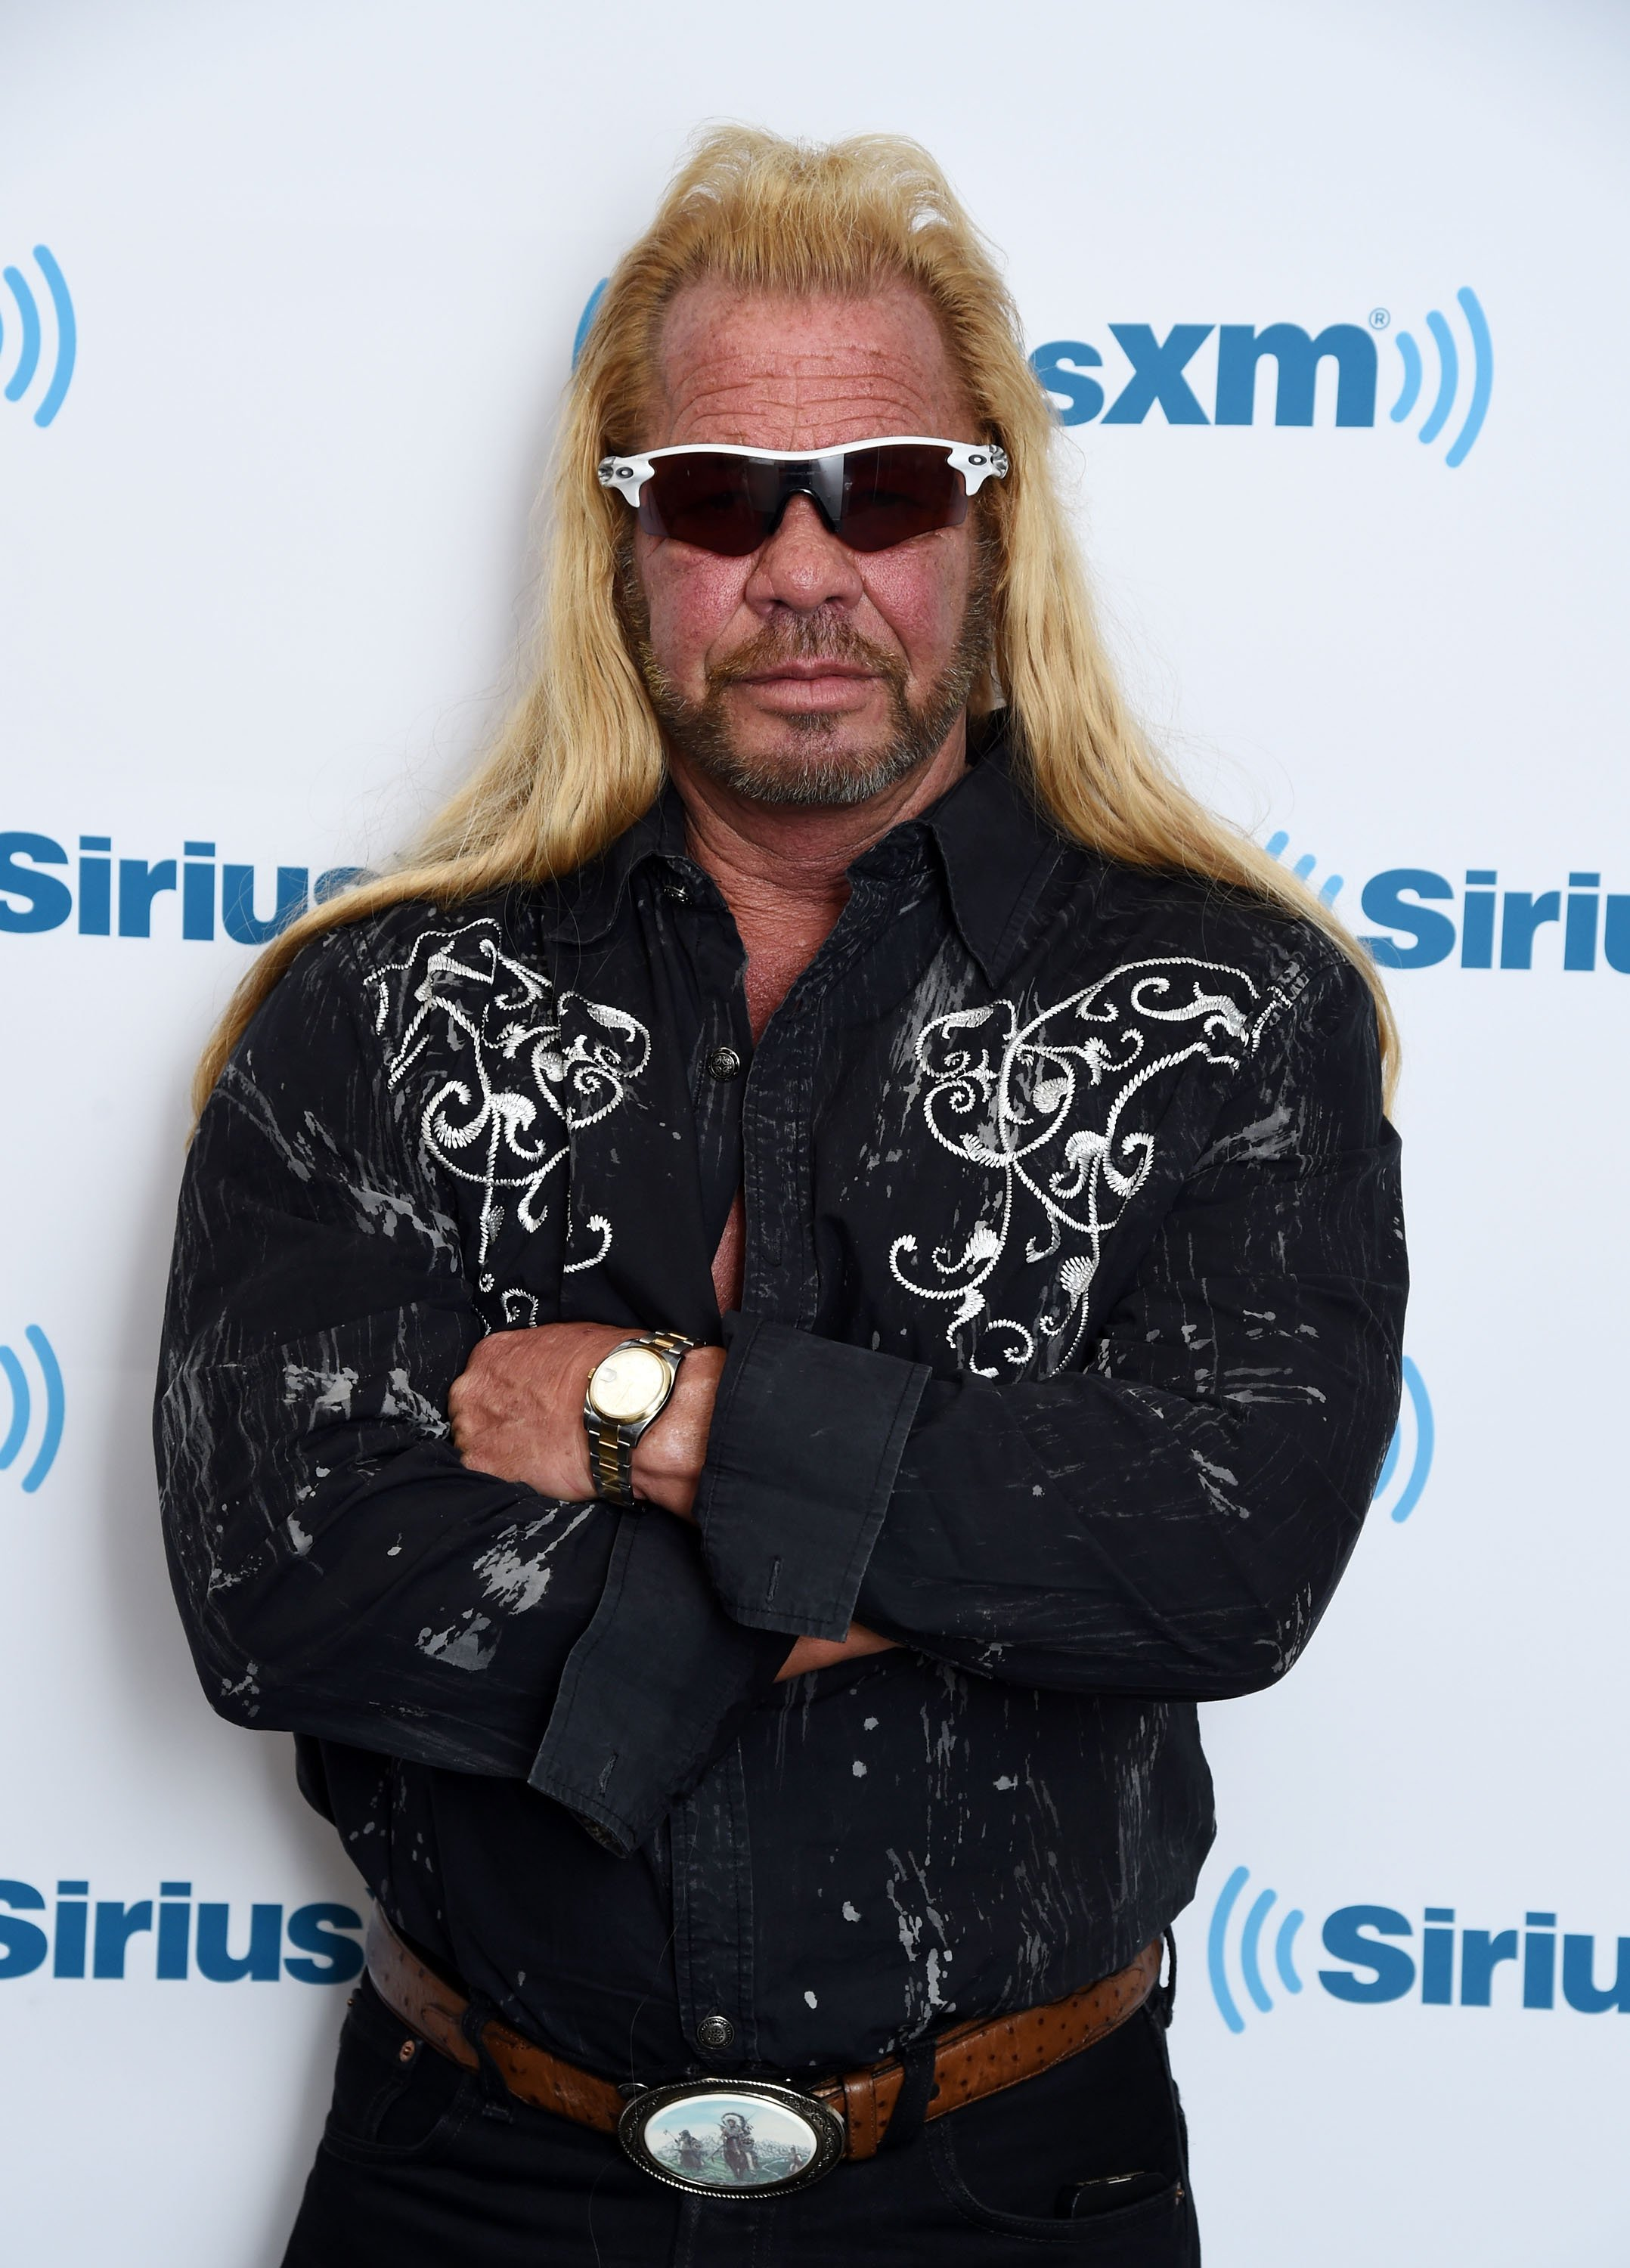 Dog the Bounty Hunter, Duane Chapman visits the SiriusXM Studios on April 24, 2015 | Photo: GettyImages